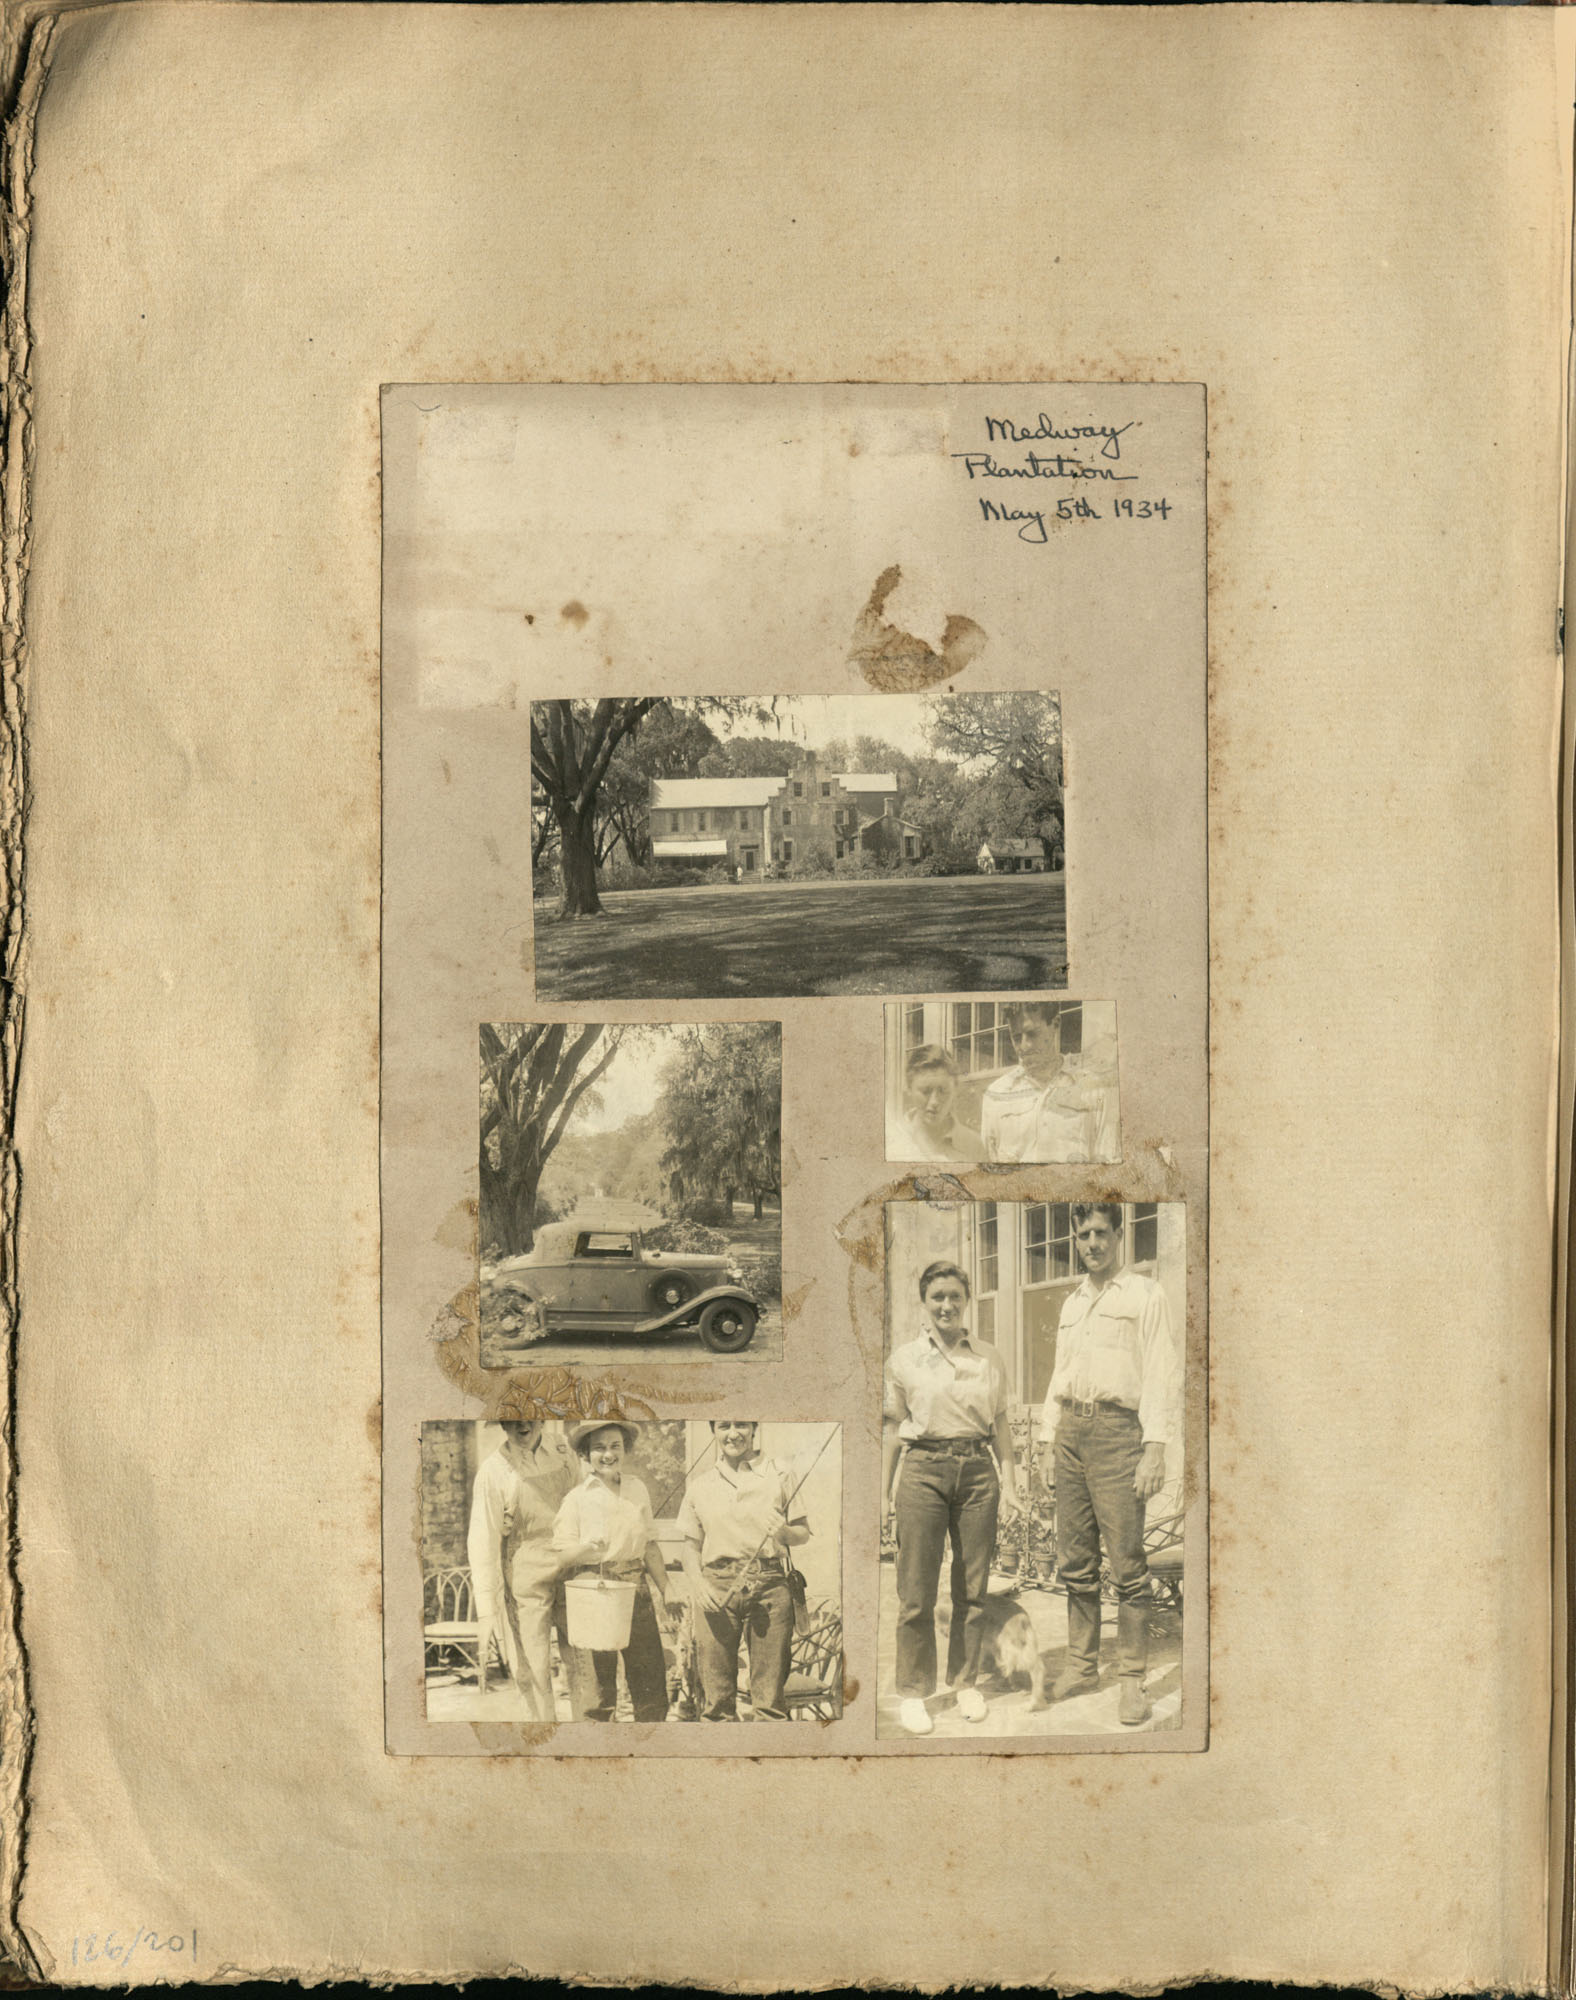 Early Medway and travels album, 1929-1937, page 126